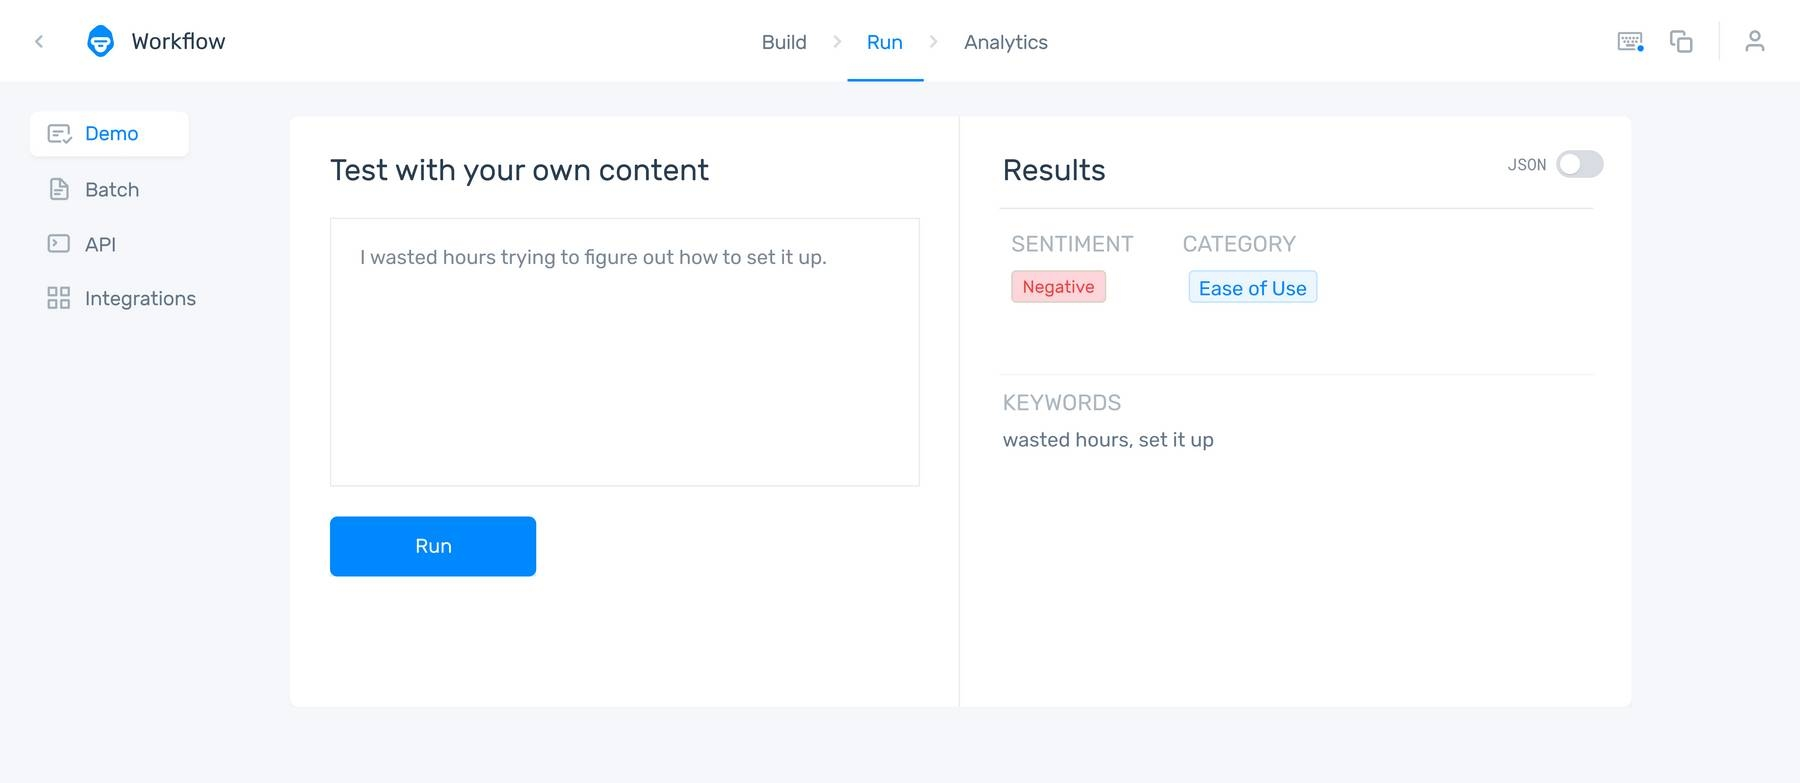 An aspect-based sentiment analyzer showing the comment: 'I wasted hours trying to figure out how to set it up.' as Negative under the category Ease of Use.